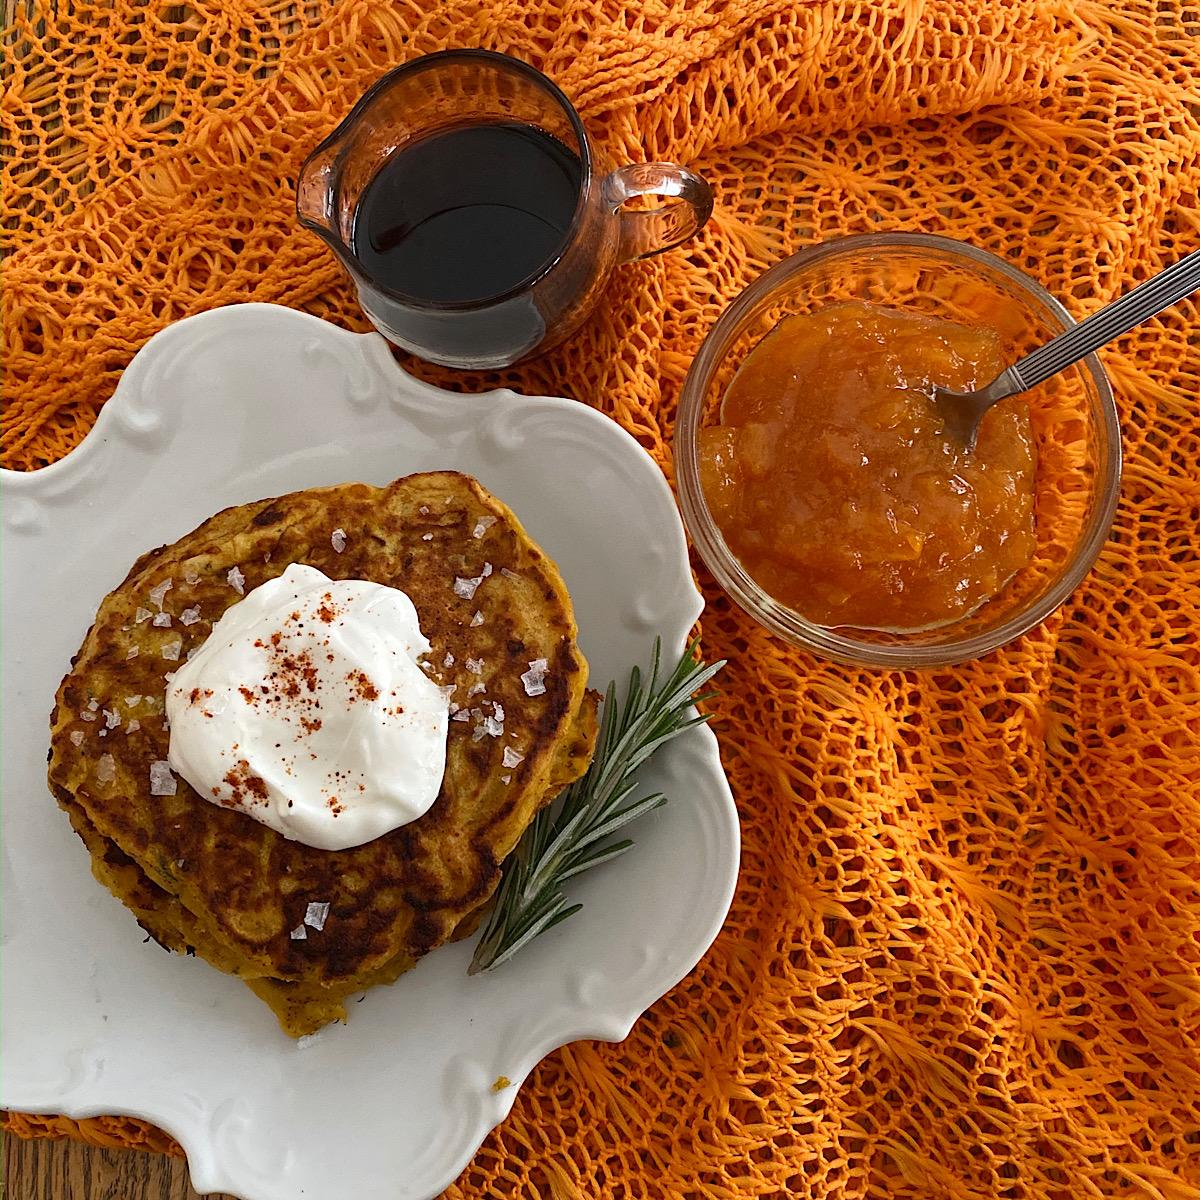 Pumpkin pancakes with side of apricot jam and maple syrup